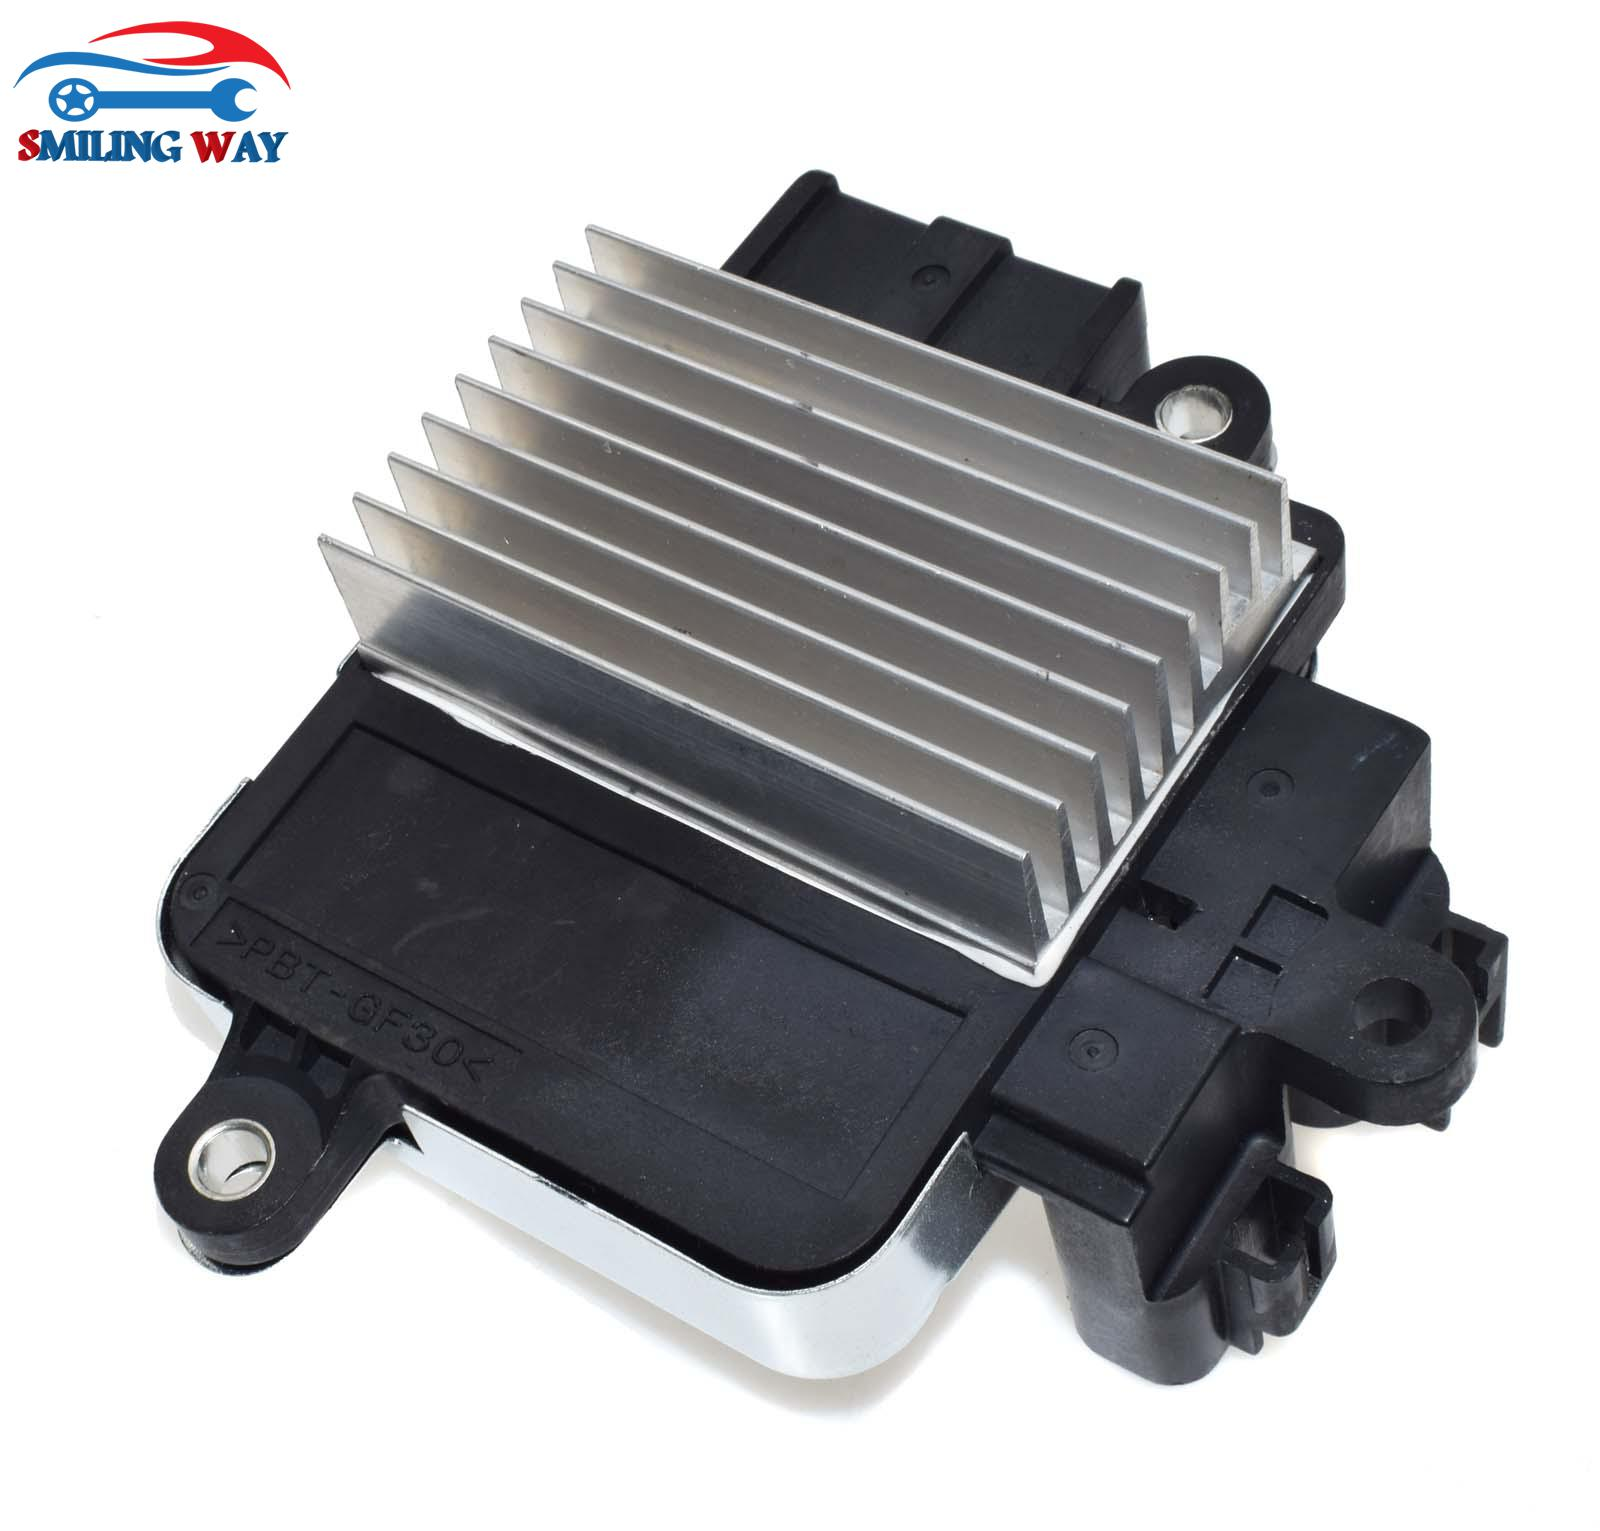 smiling way blower motor resistor for toyota camry highlander venza avalon rav4 sienna lexus es350 gs300 gs350 gs430 gs450h [ 1600 x 1531 Pixel ]